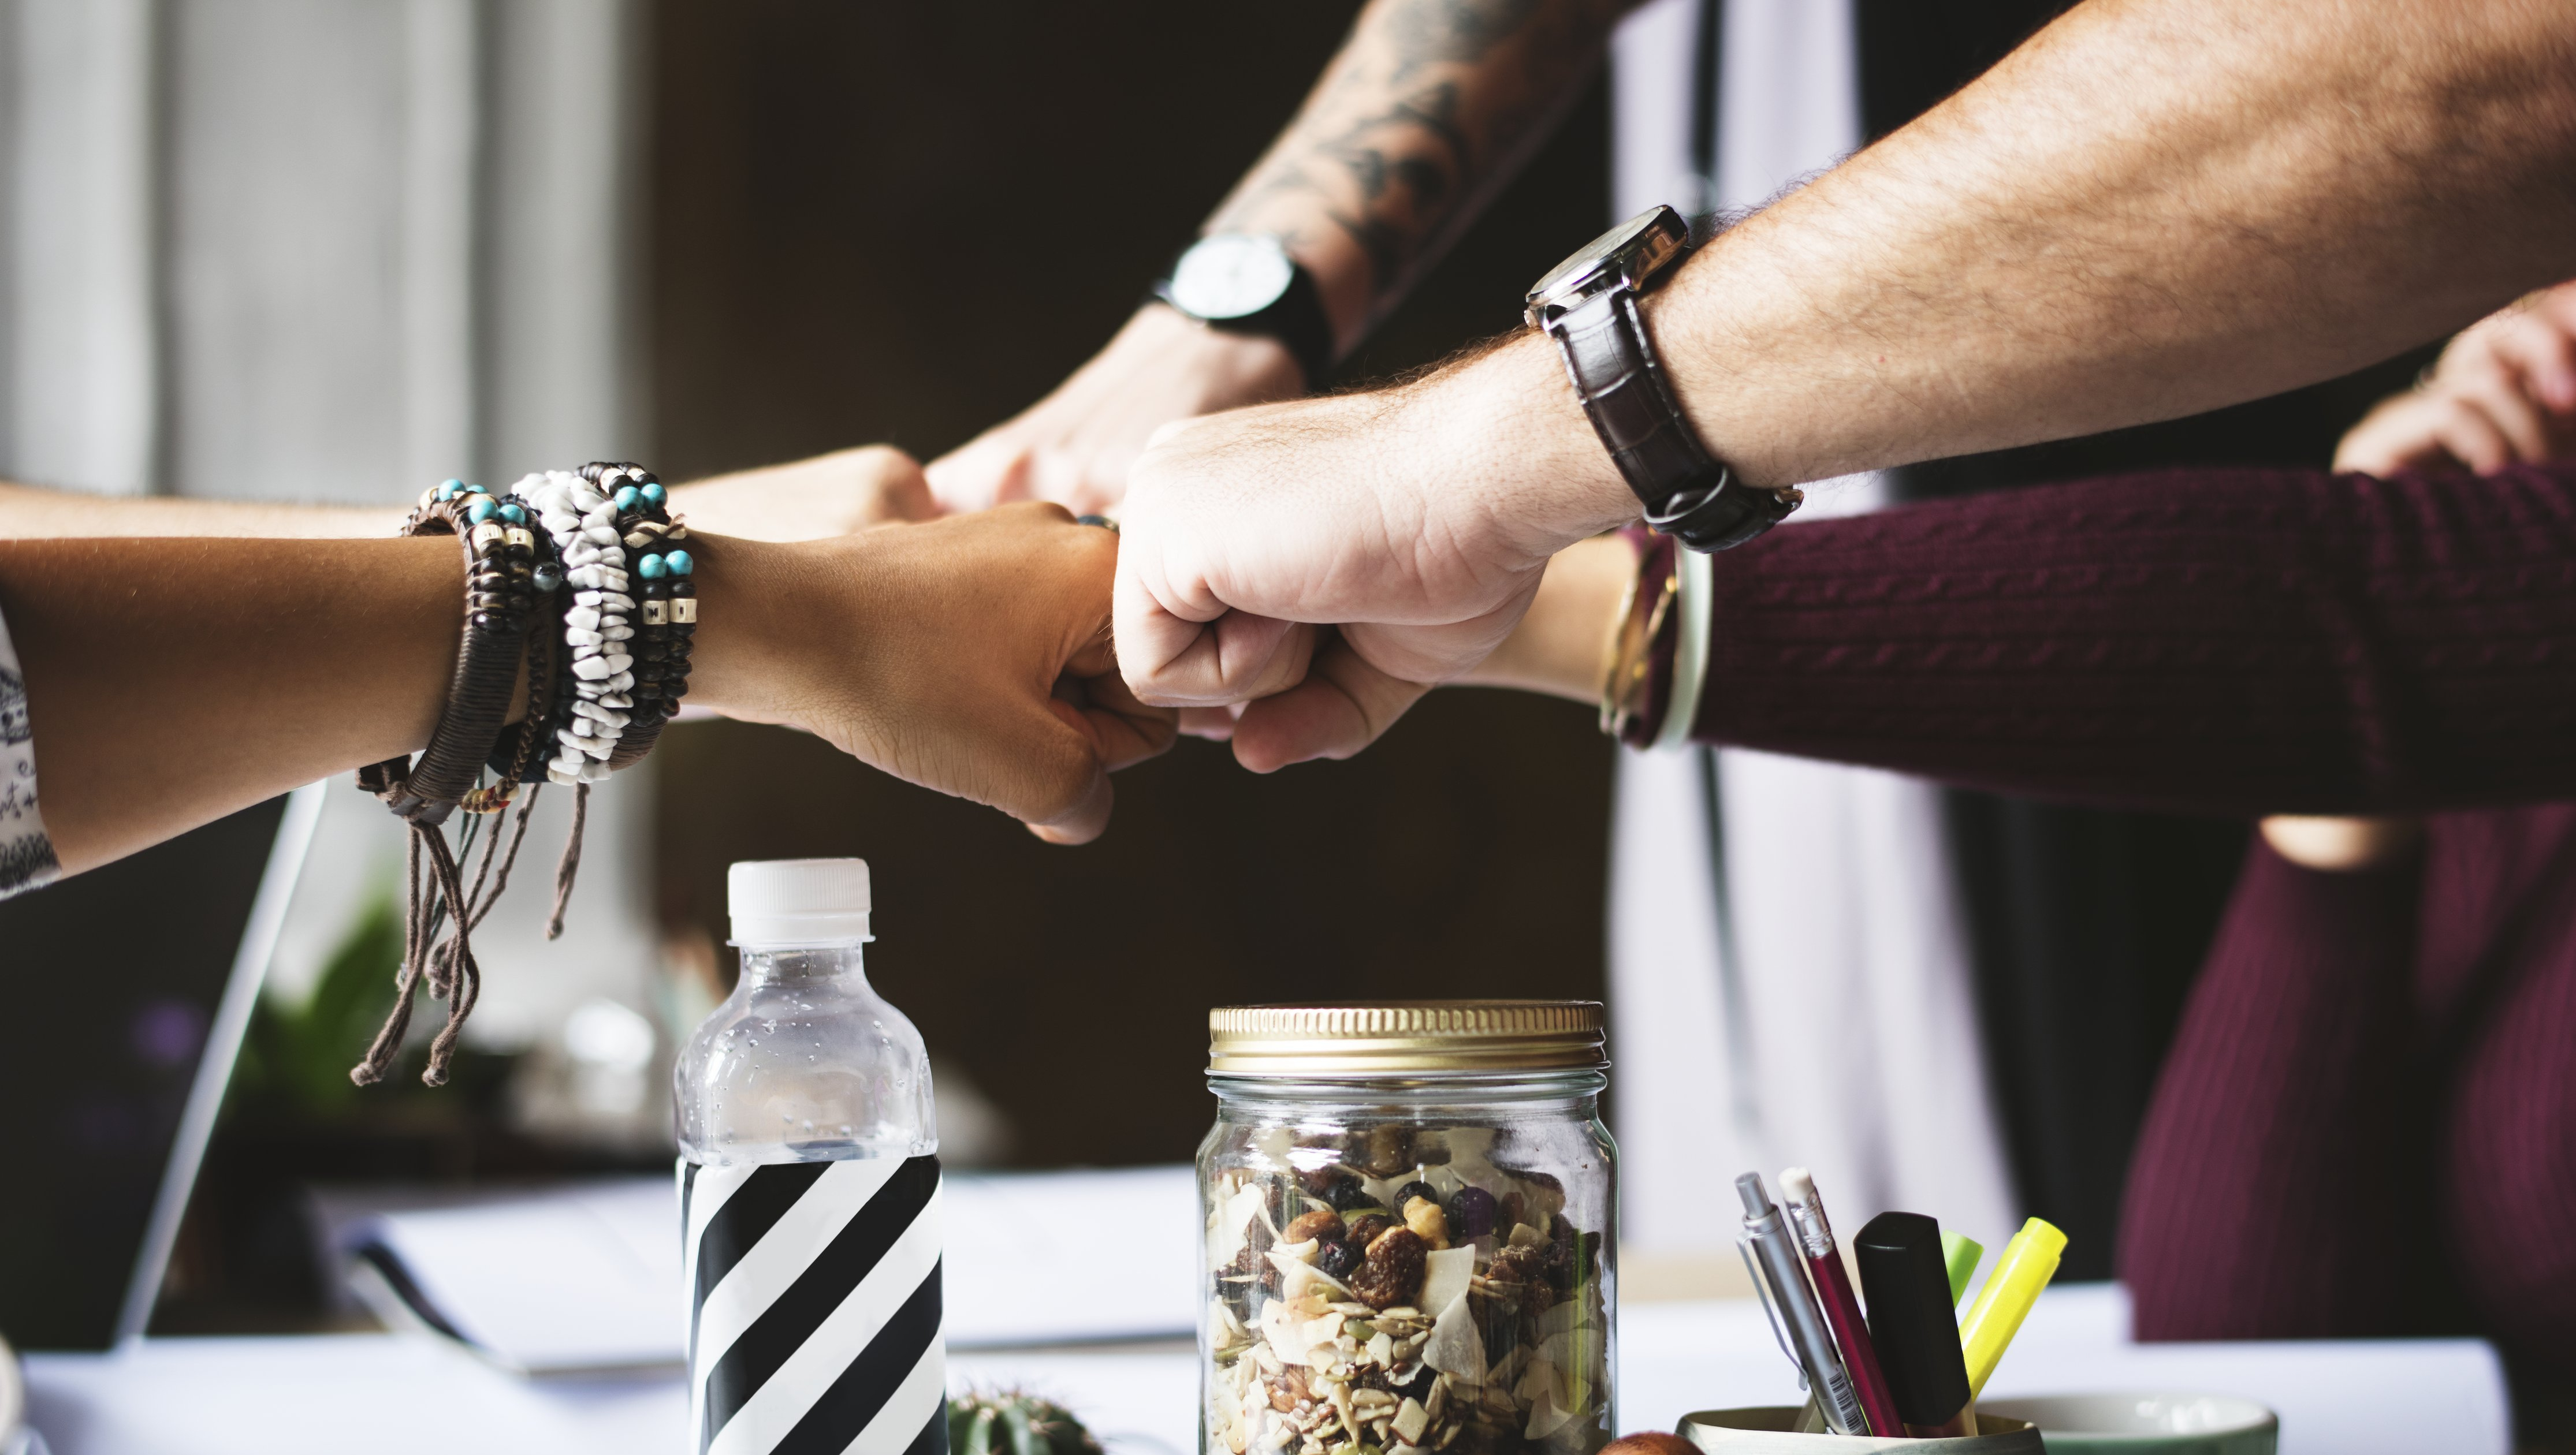 Business colleagues fistbumping over a desk